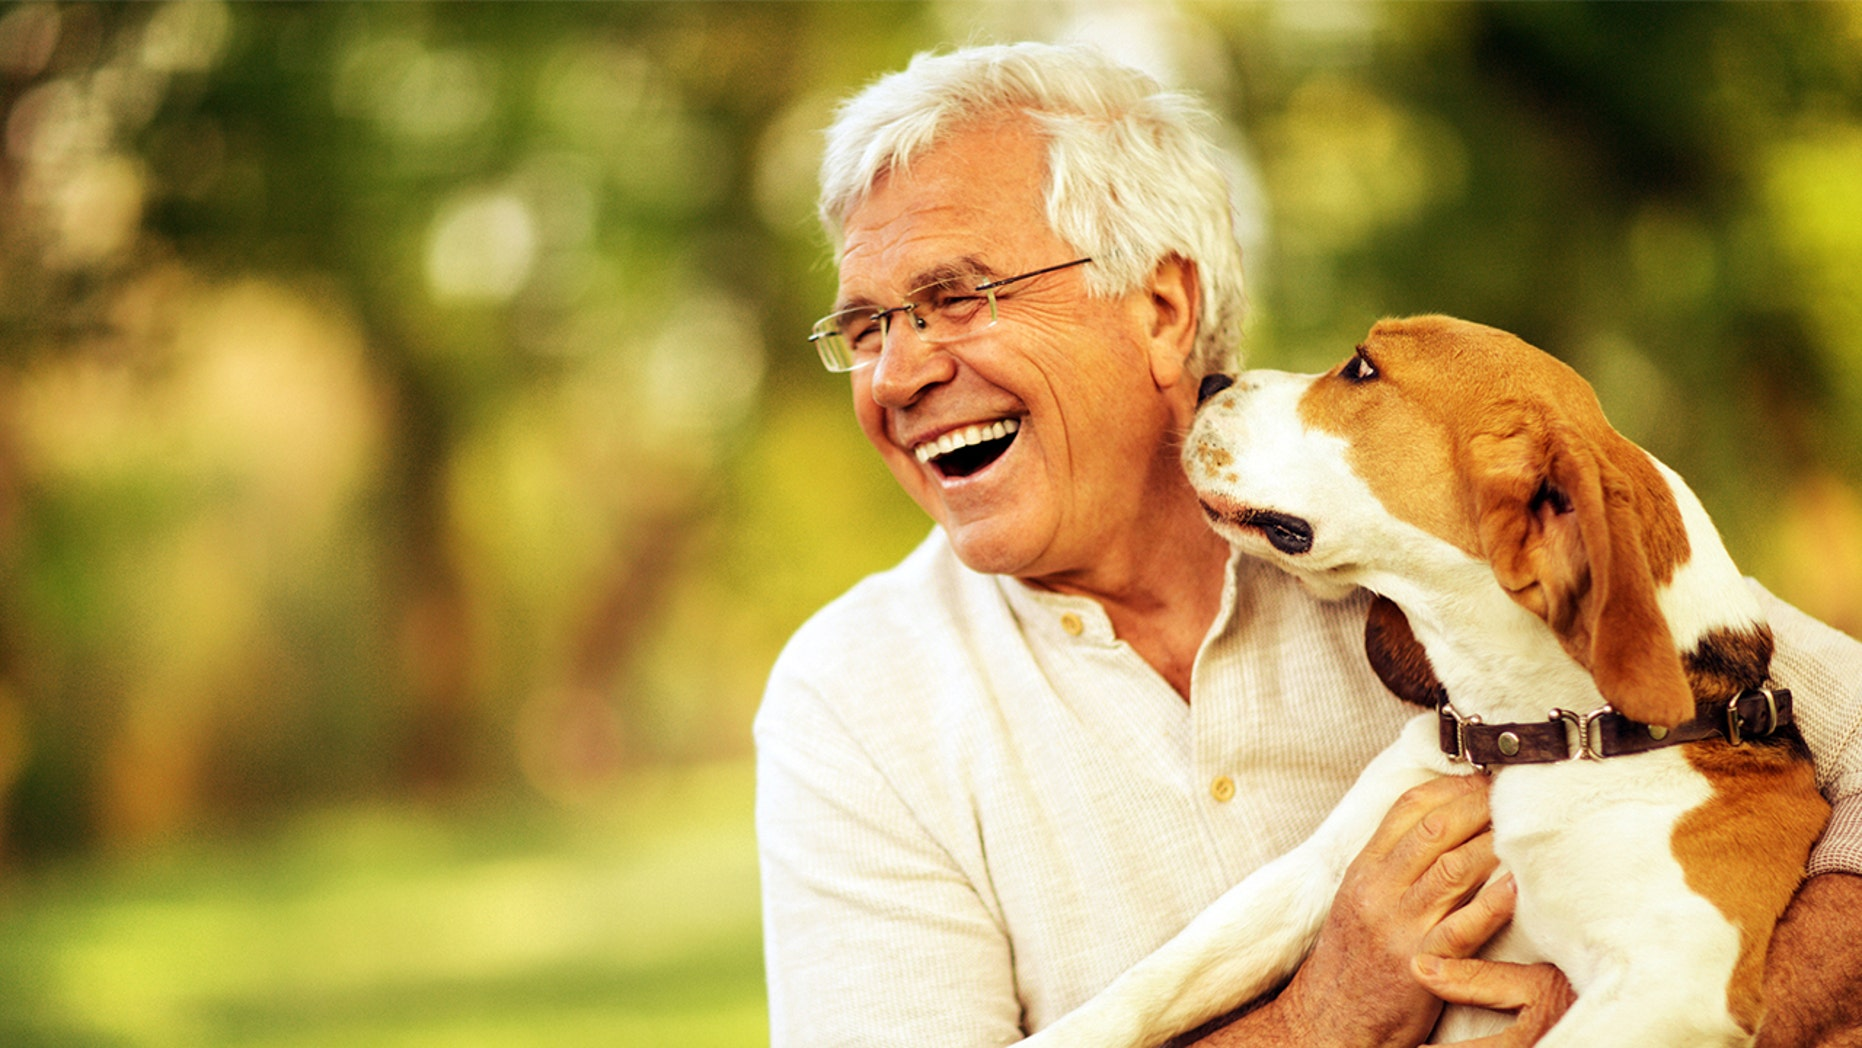 Pet owners, Fido is holding you responsible for ensuring he will be always be cared for.